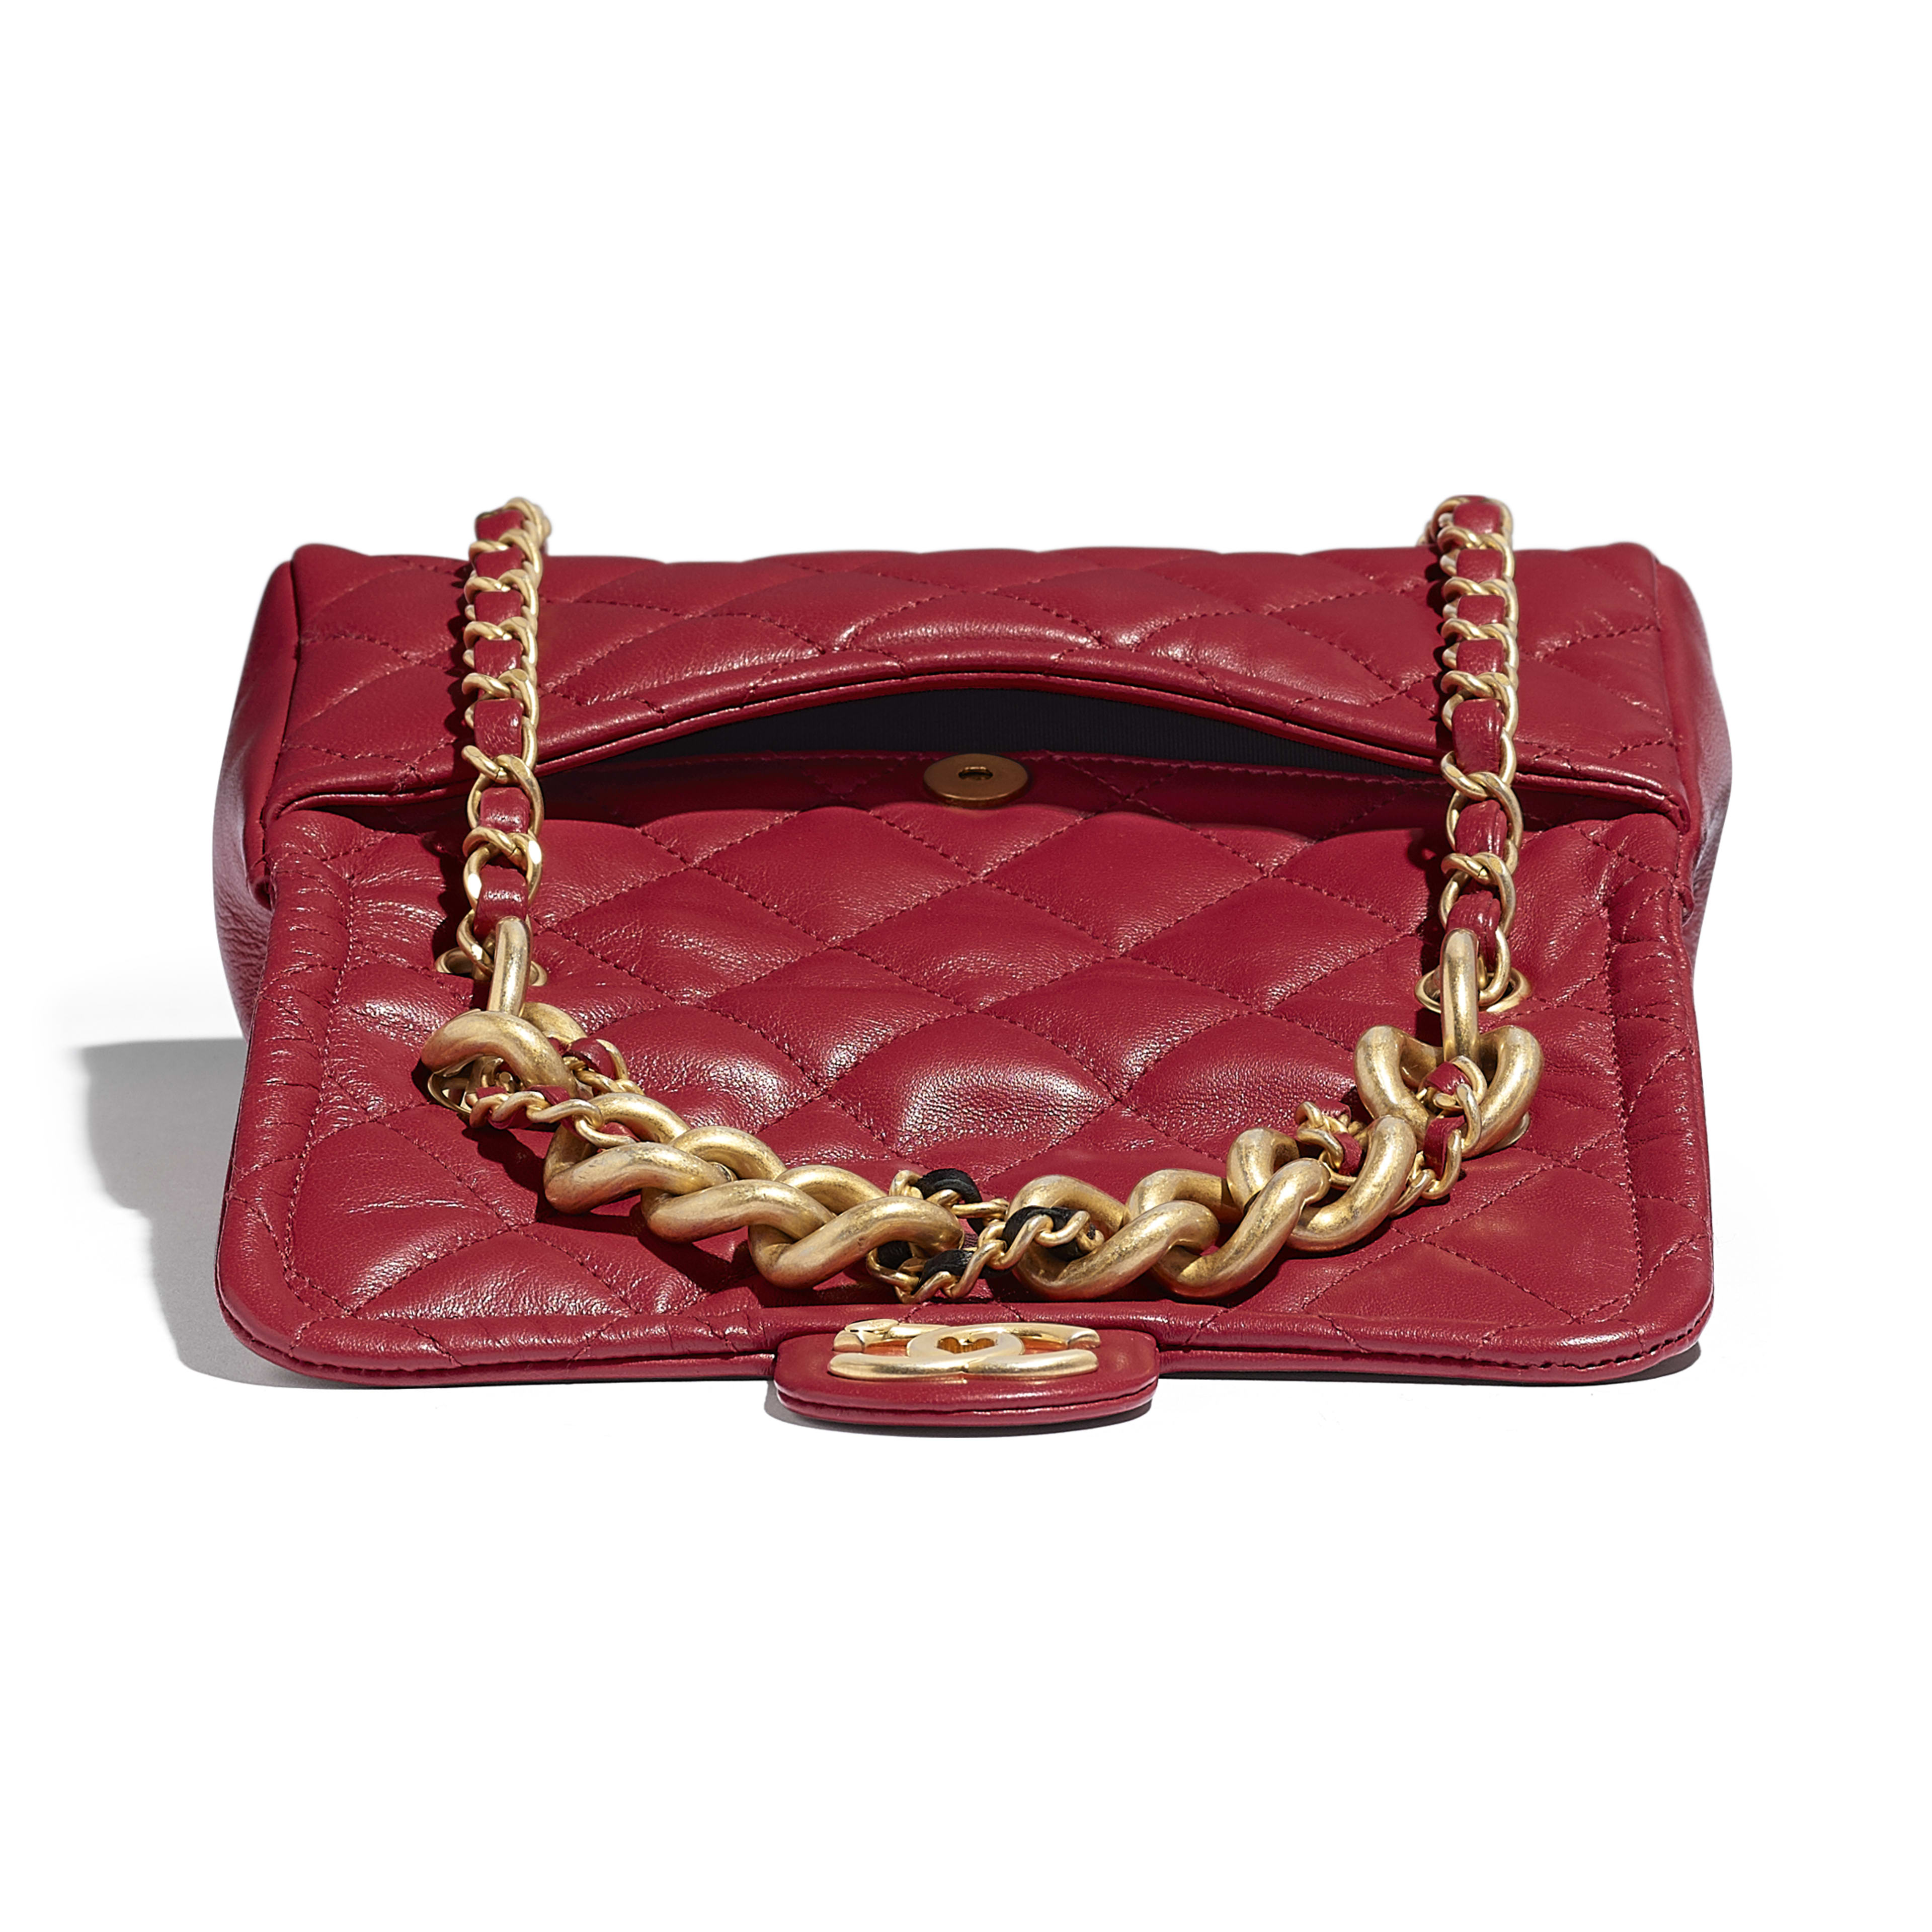 Flap Bag - Red - Lambskin - Extra view - see full sized version